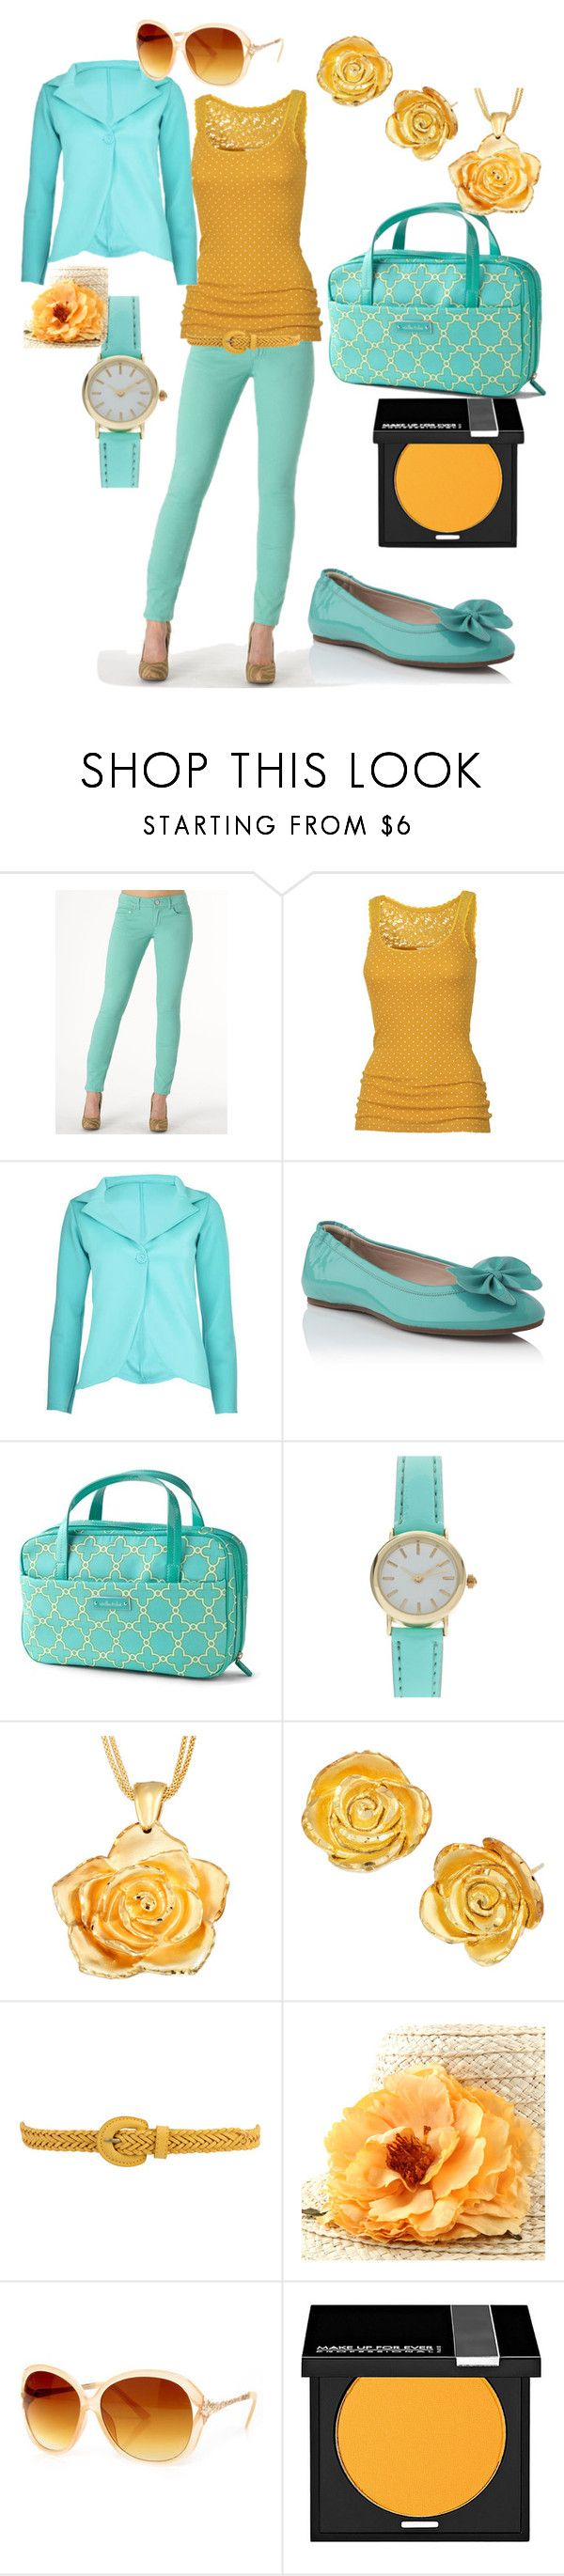 """mint green pants - orange outfit"" by jaystilo ❤ liked on Polyvore featuring Indigo Rein, Fat Face, L.K.Bennett, Stella & Dot, ASOS, Forever 21, MAKE UP FOR EVER, mint green and orange"